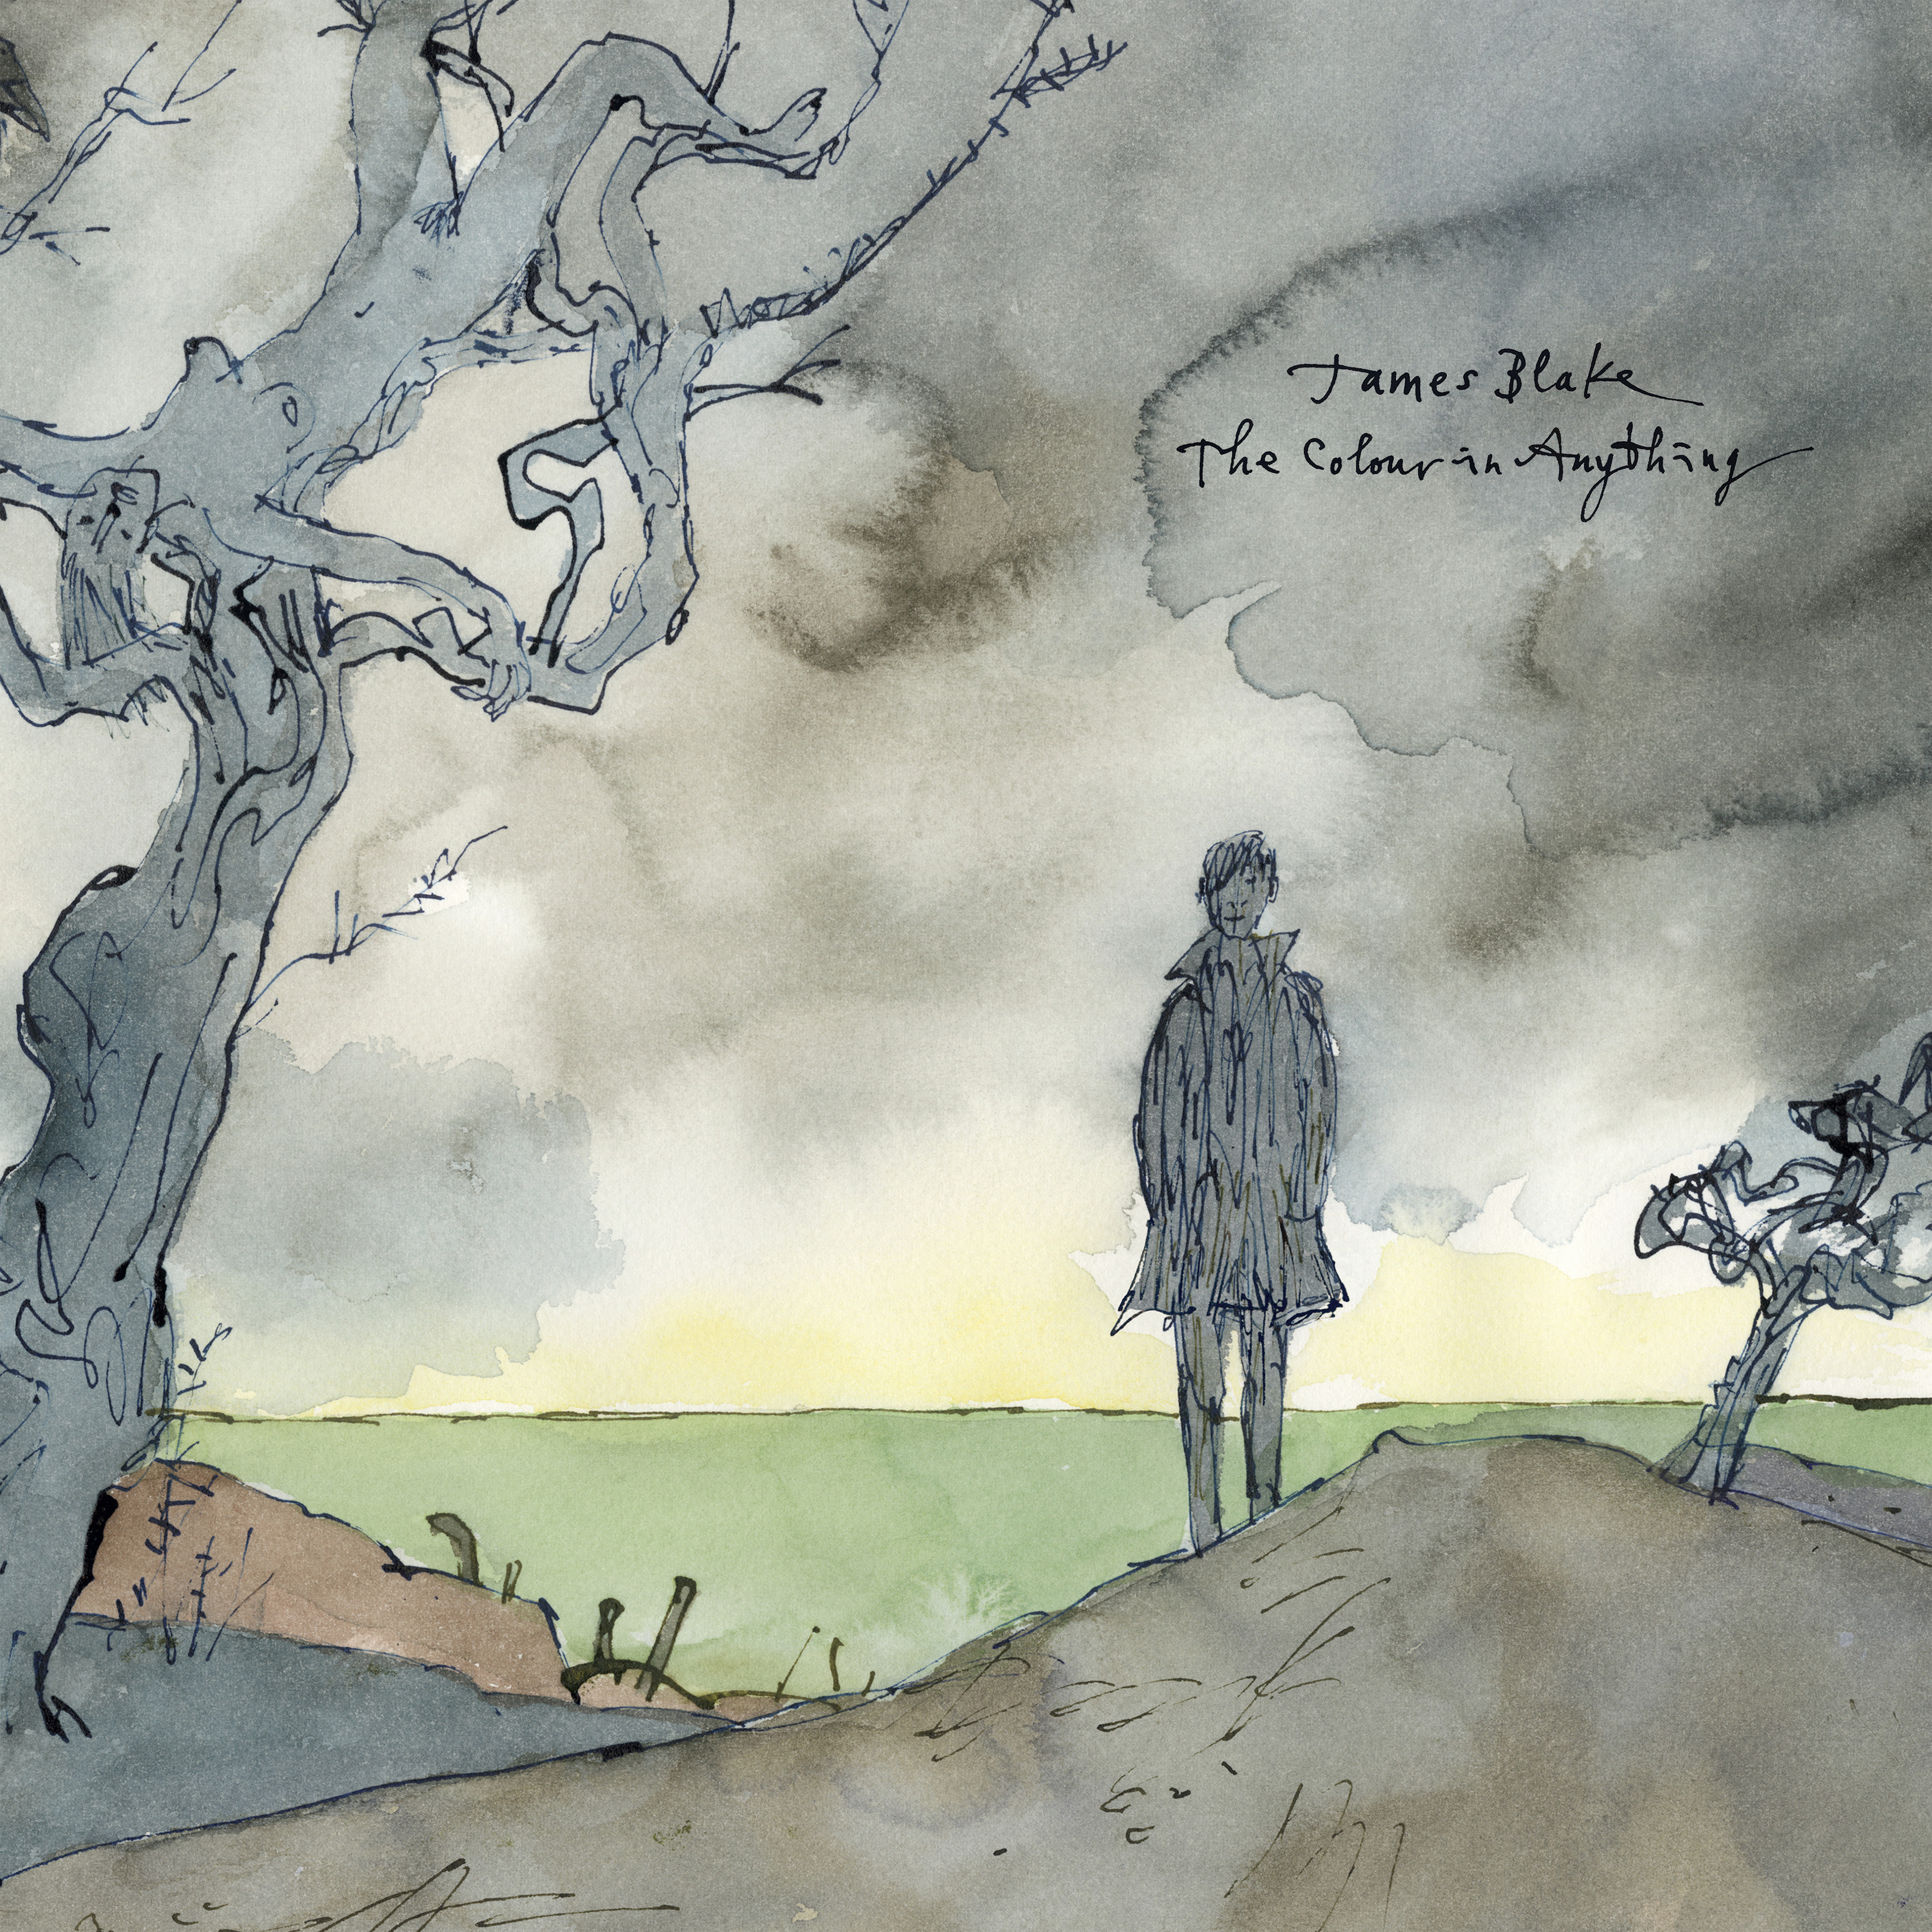 James Blake announces new North American tour dates,